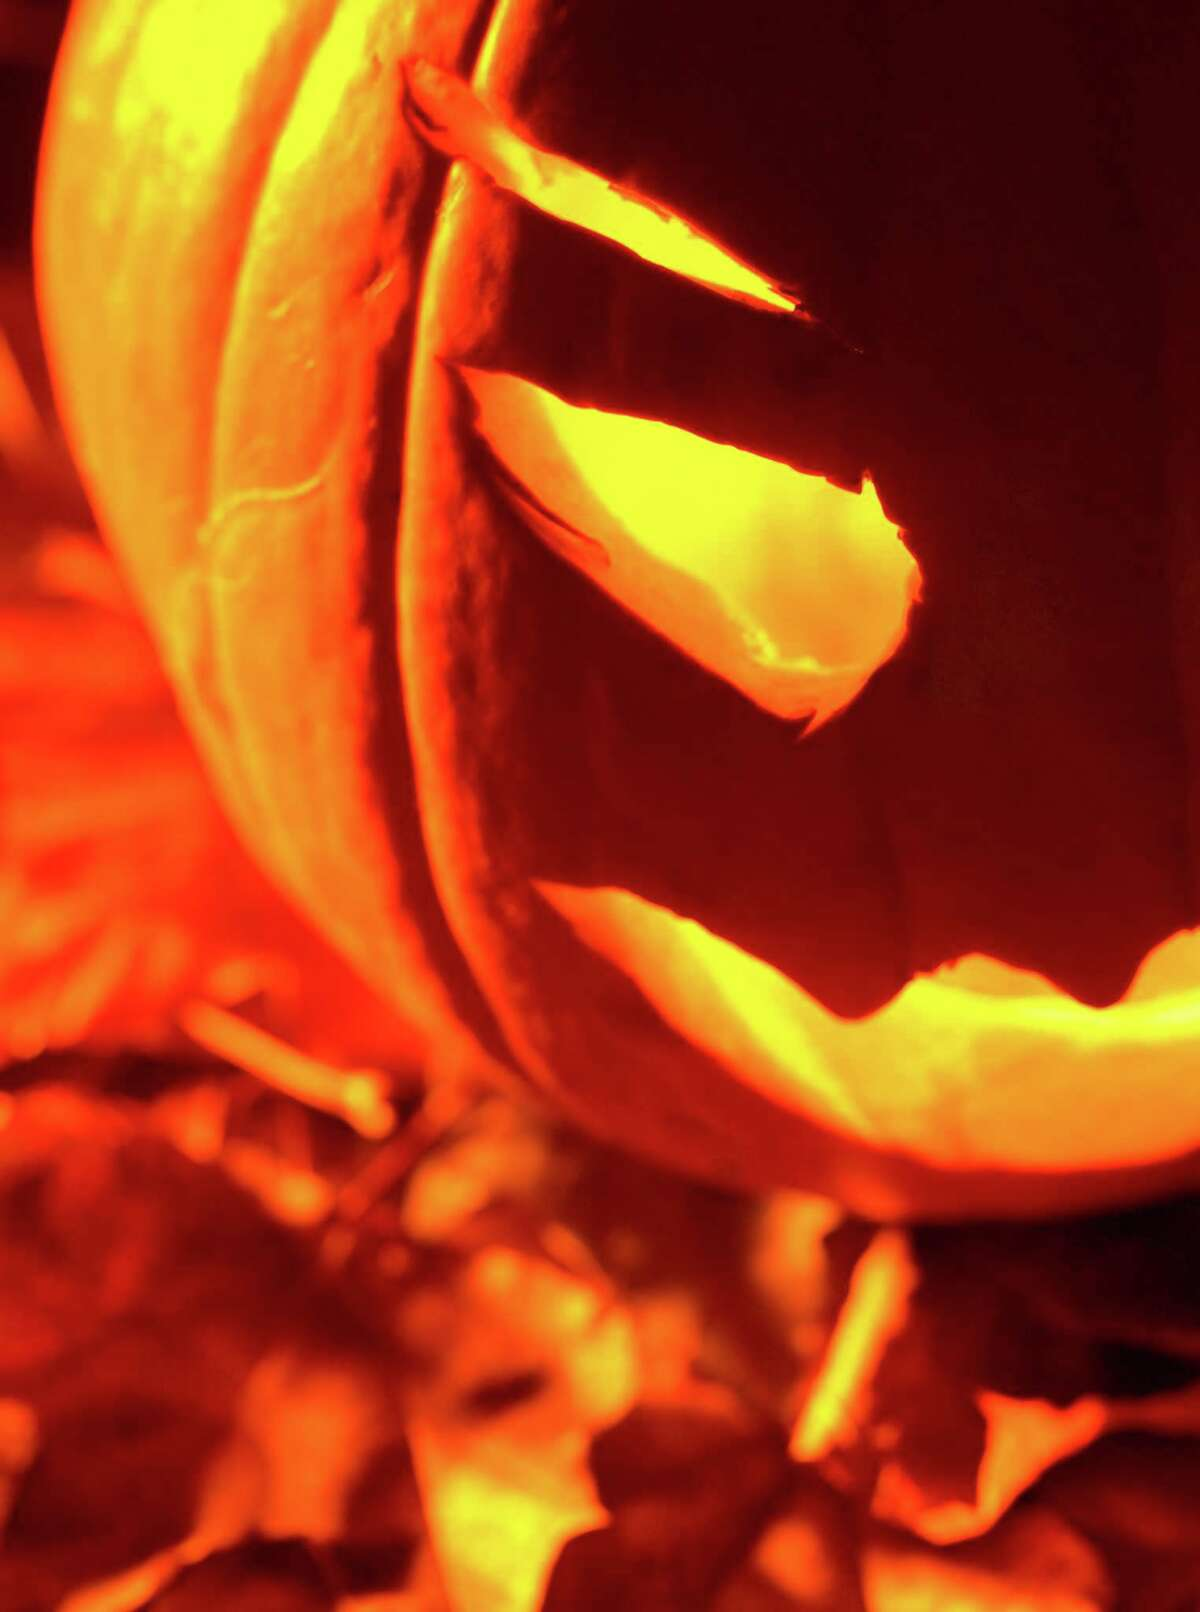 More than 500 pumpkins will be turned into jack-o'-lanterns to light the way on a spooky outdoor trail at Mystic Seaport Museum, Oct. 26-30. The spectacle will be part of a new attraction called the